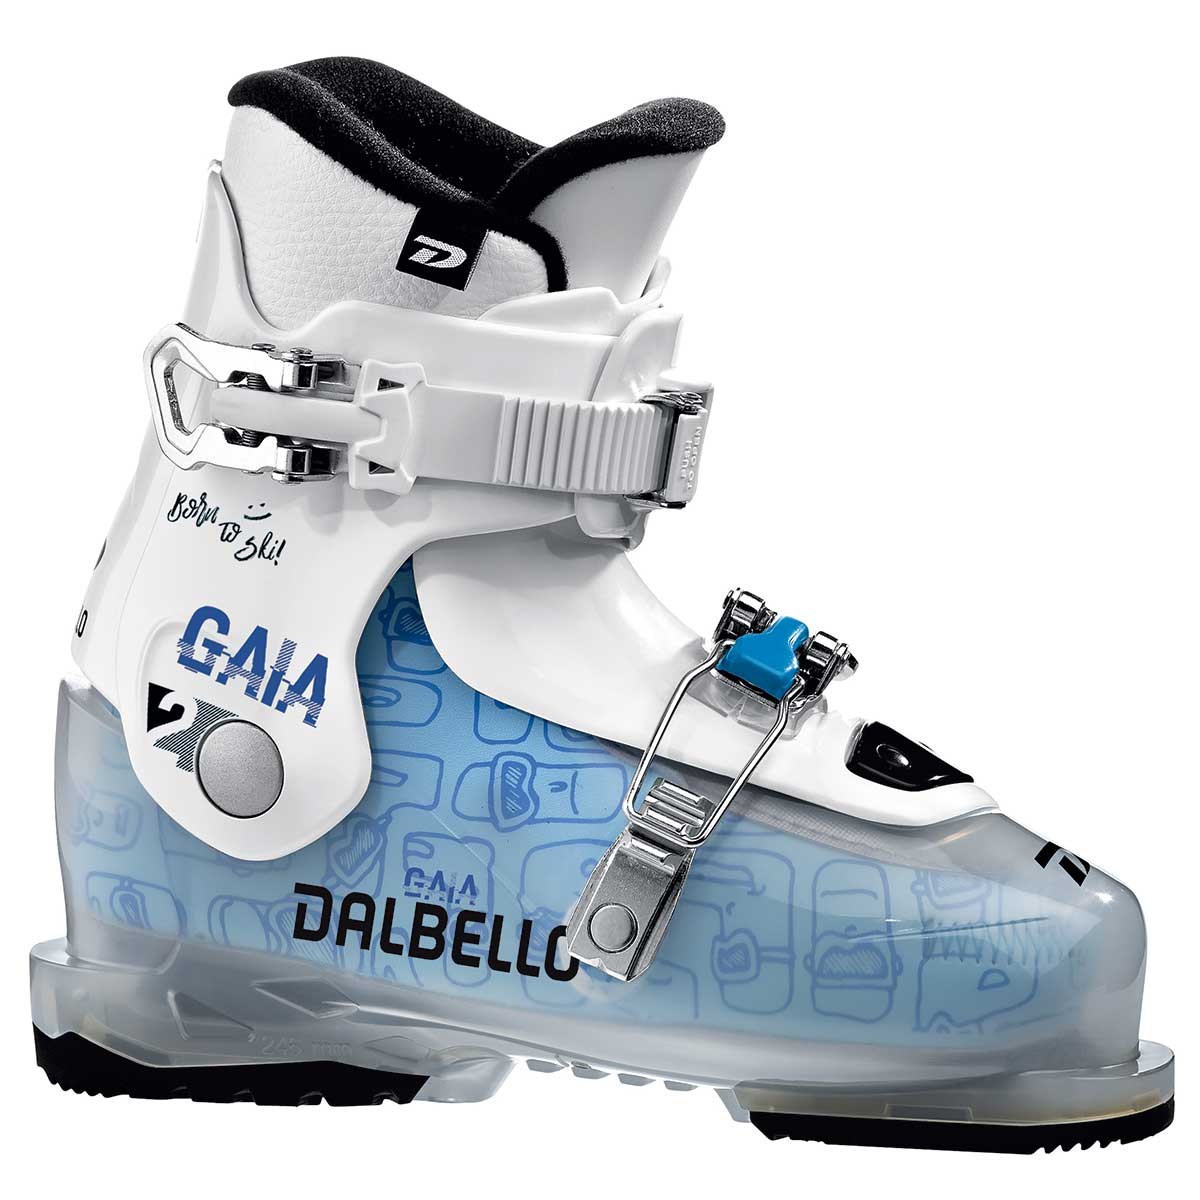 Dalbello Gaia 2 junior ski boot in trans white